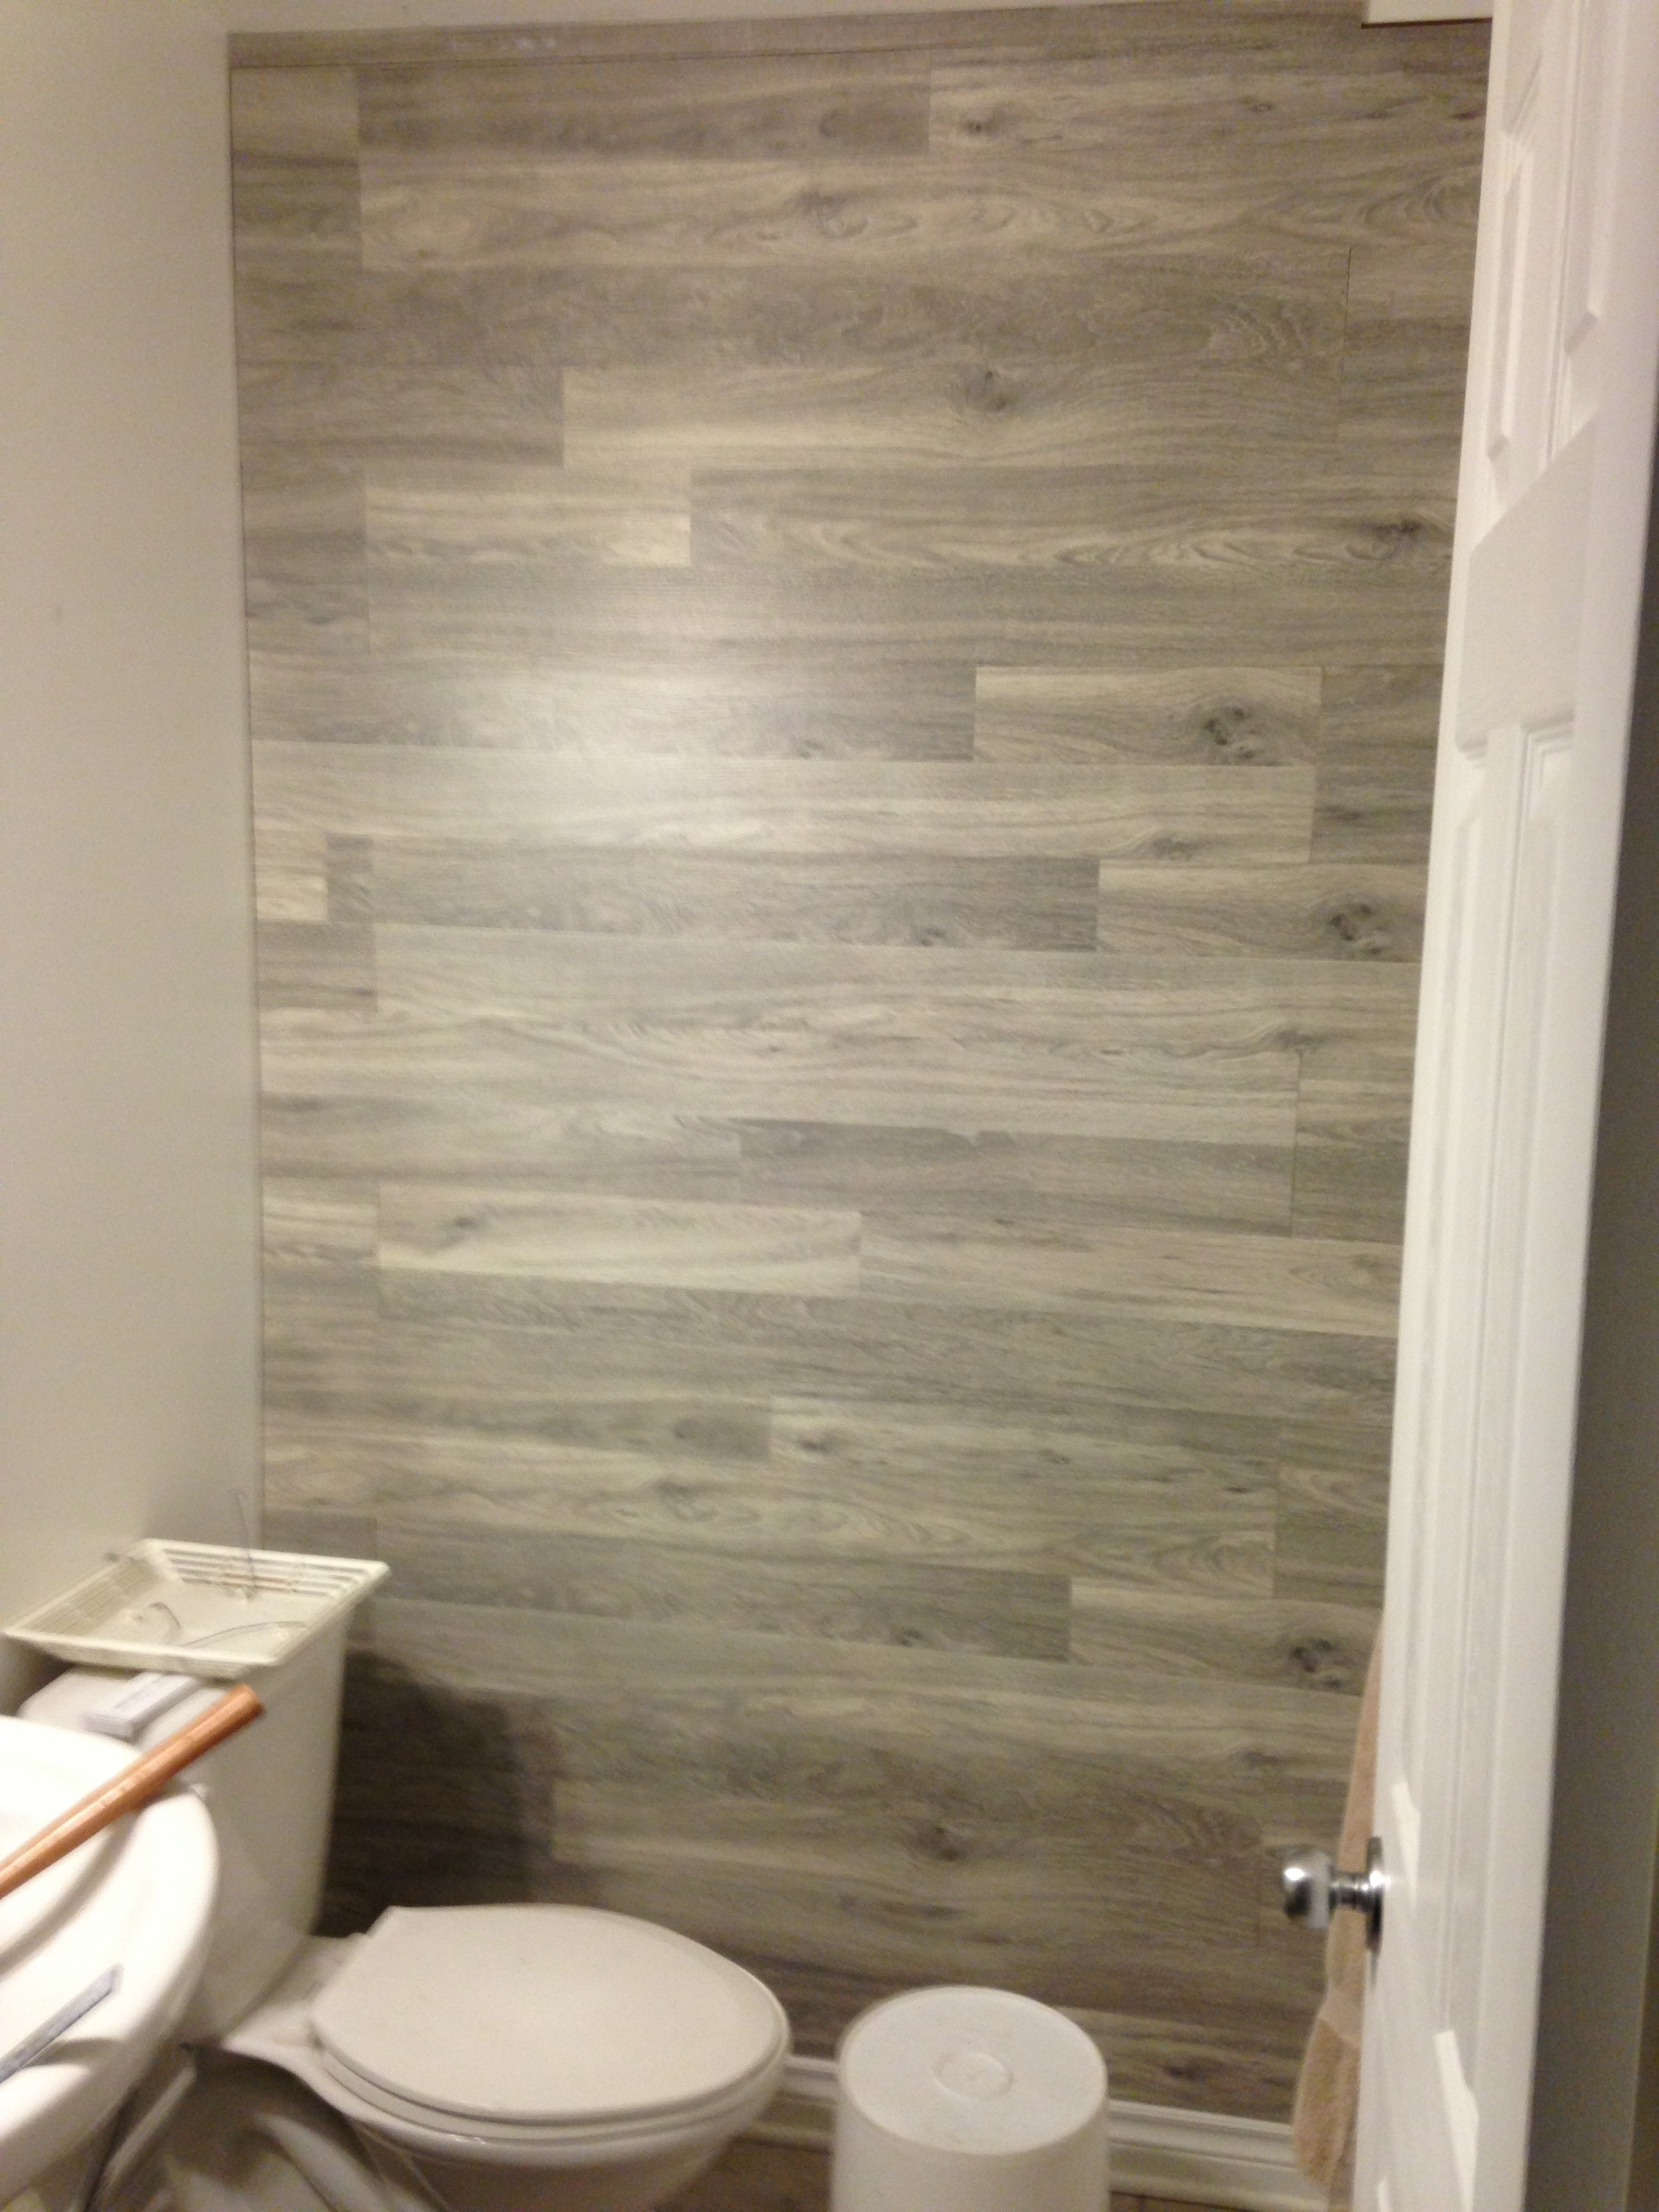 Laminate Flooring On Accent Wall Inside Recent Wall Accents With Laminate Flooring (View 8 of 15)